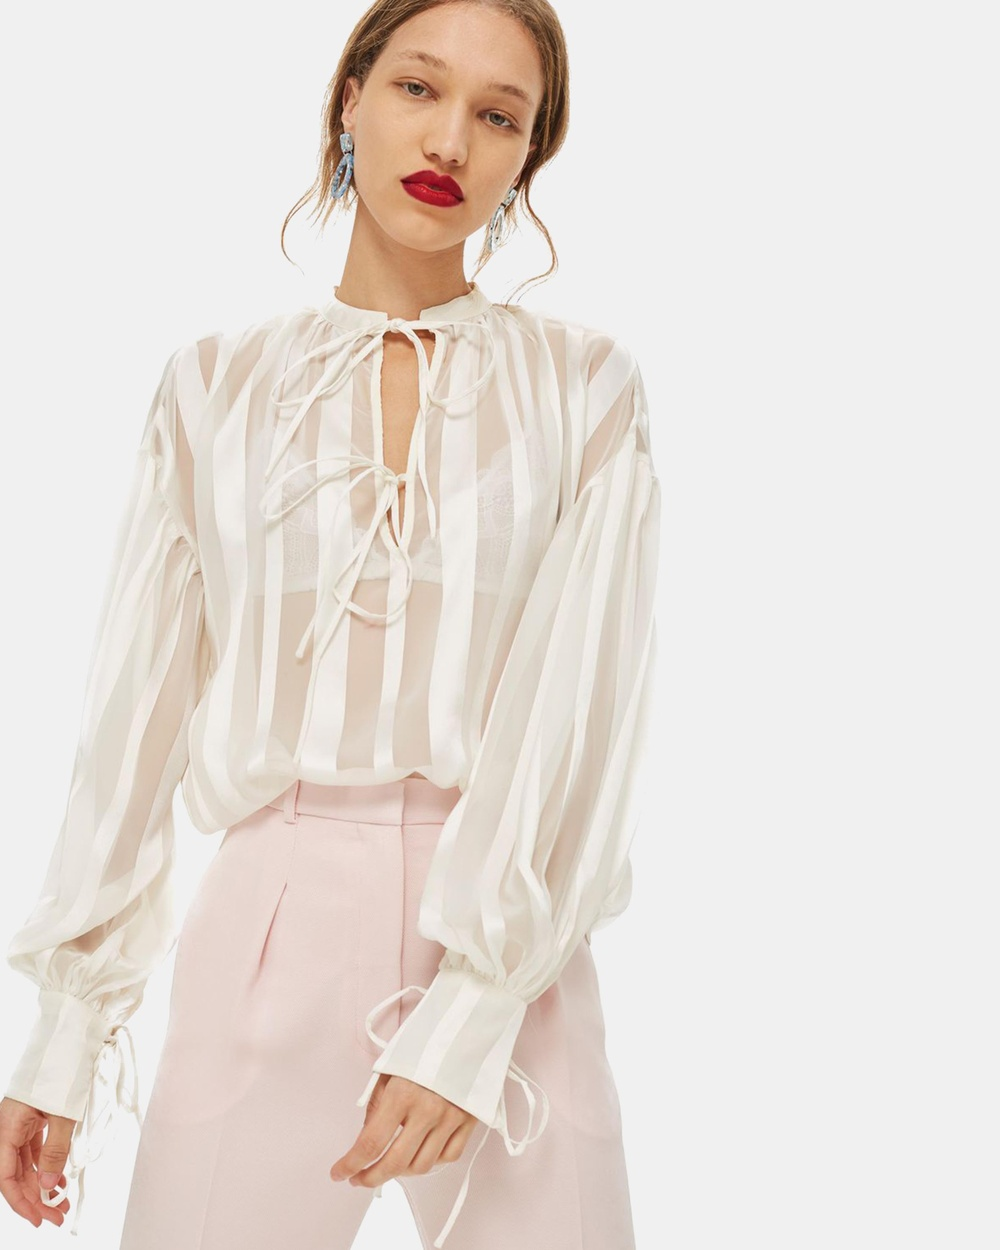 TOPSHOP Self Stripe Gypsy Blouse Tops Ivory Self-Stripe Gypsy Blouse